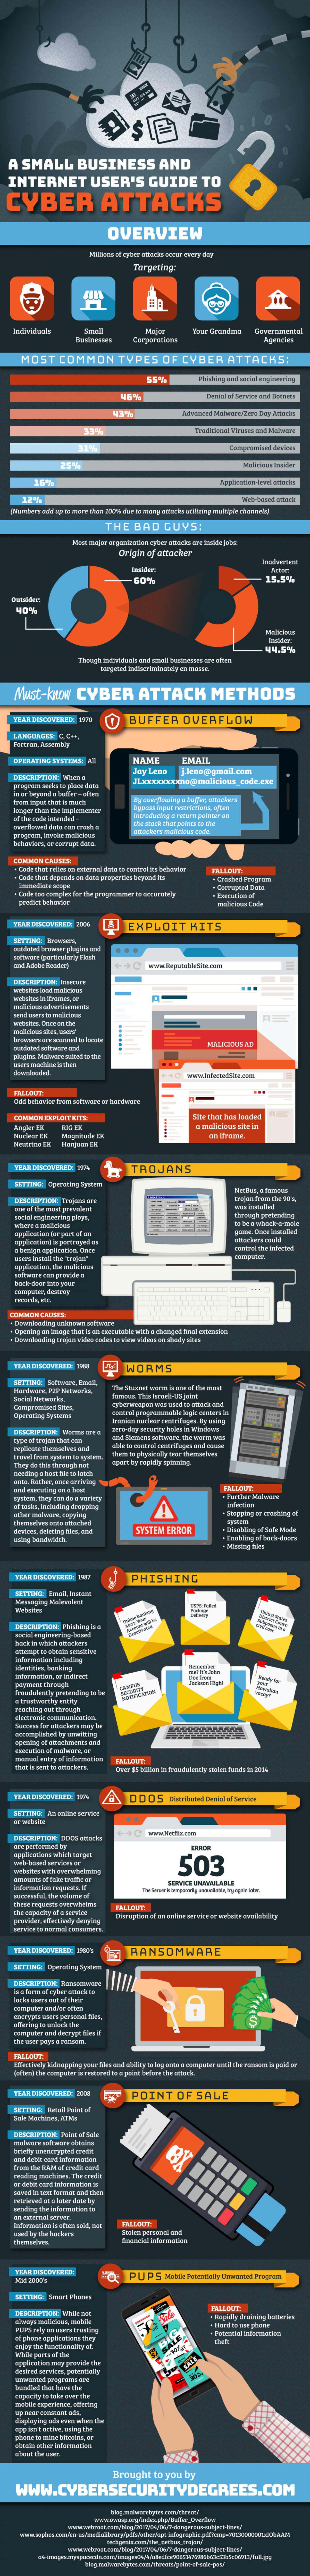 A Small Business and Internet User's Guide to Cyber Attacks Infographic